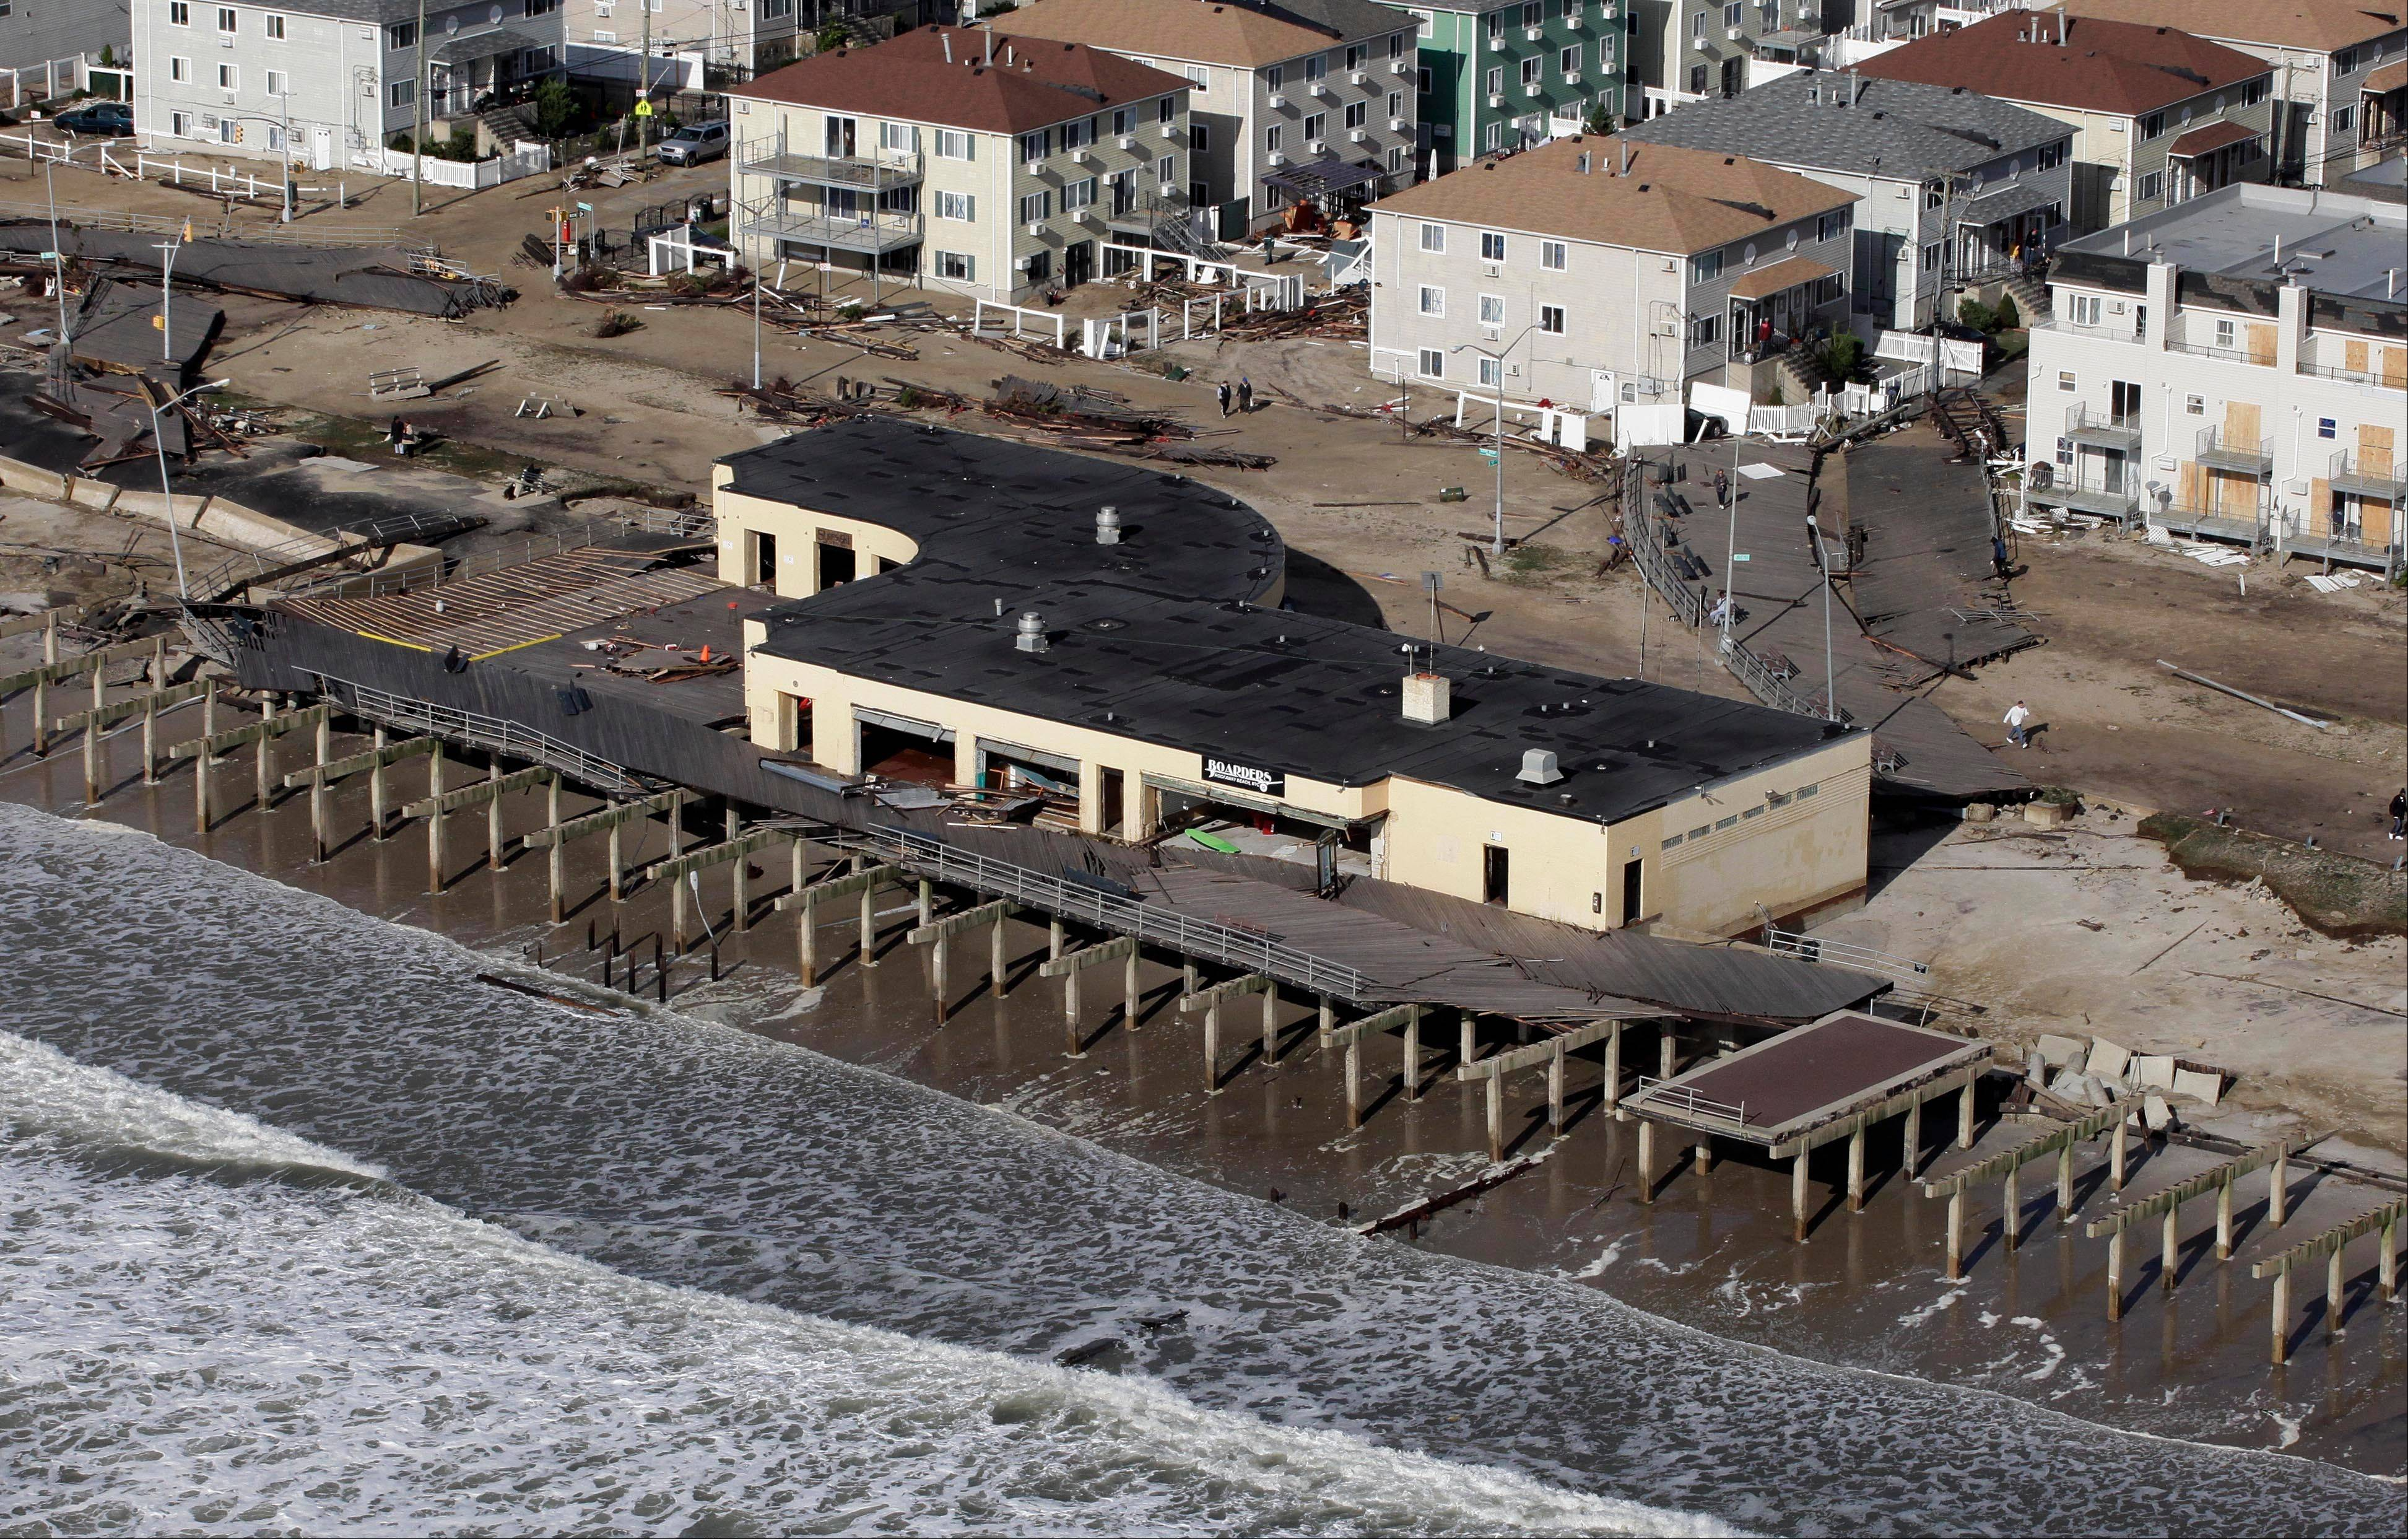 The boardwalk at Rockaway Beach is largely destroyed, Wednesday, Oct. 31, 2012, following superstorm Sandy which struck New York Monday and Tuesday. Sandy, the storm that made landfall Monday, caused multiple fatalities, halted mass transit and cut power to more than 6 million homes and businesses.